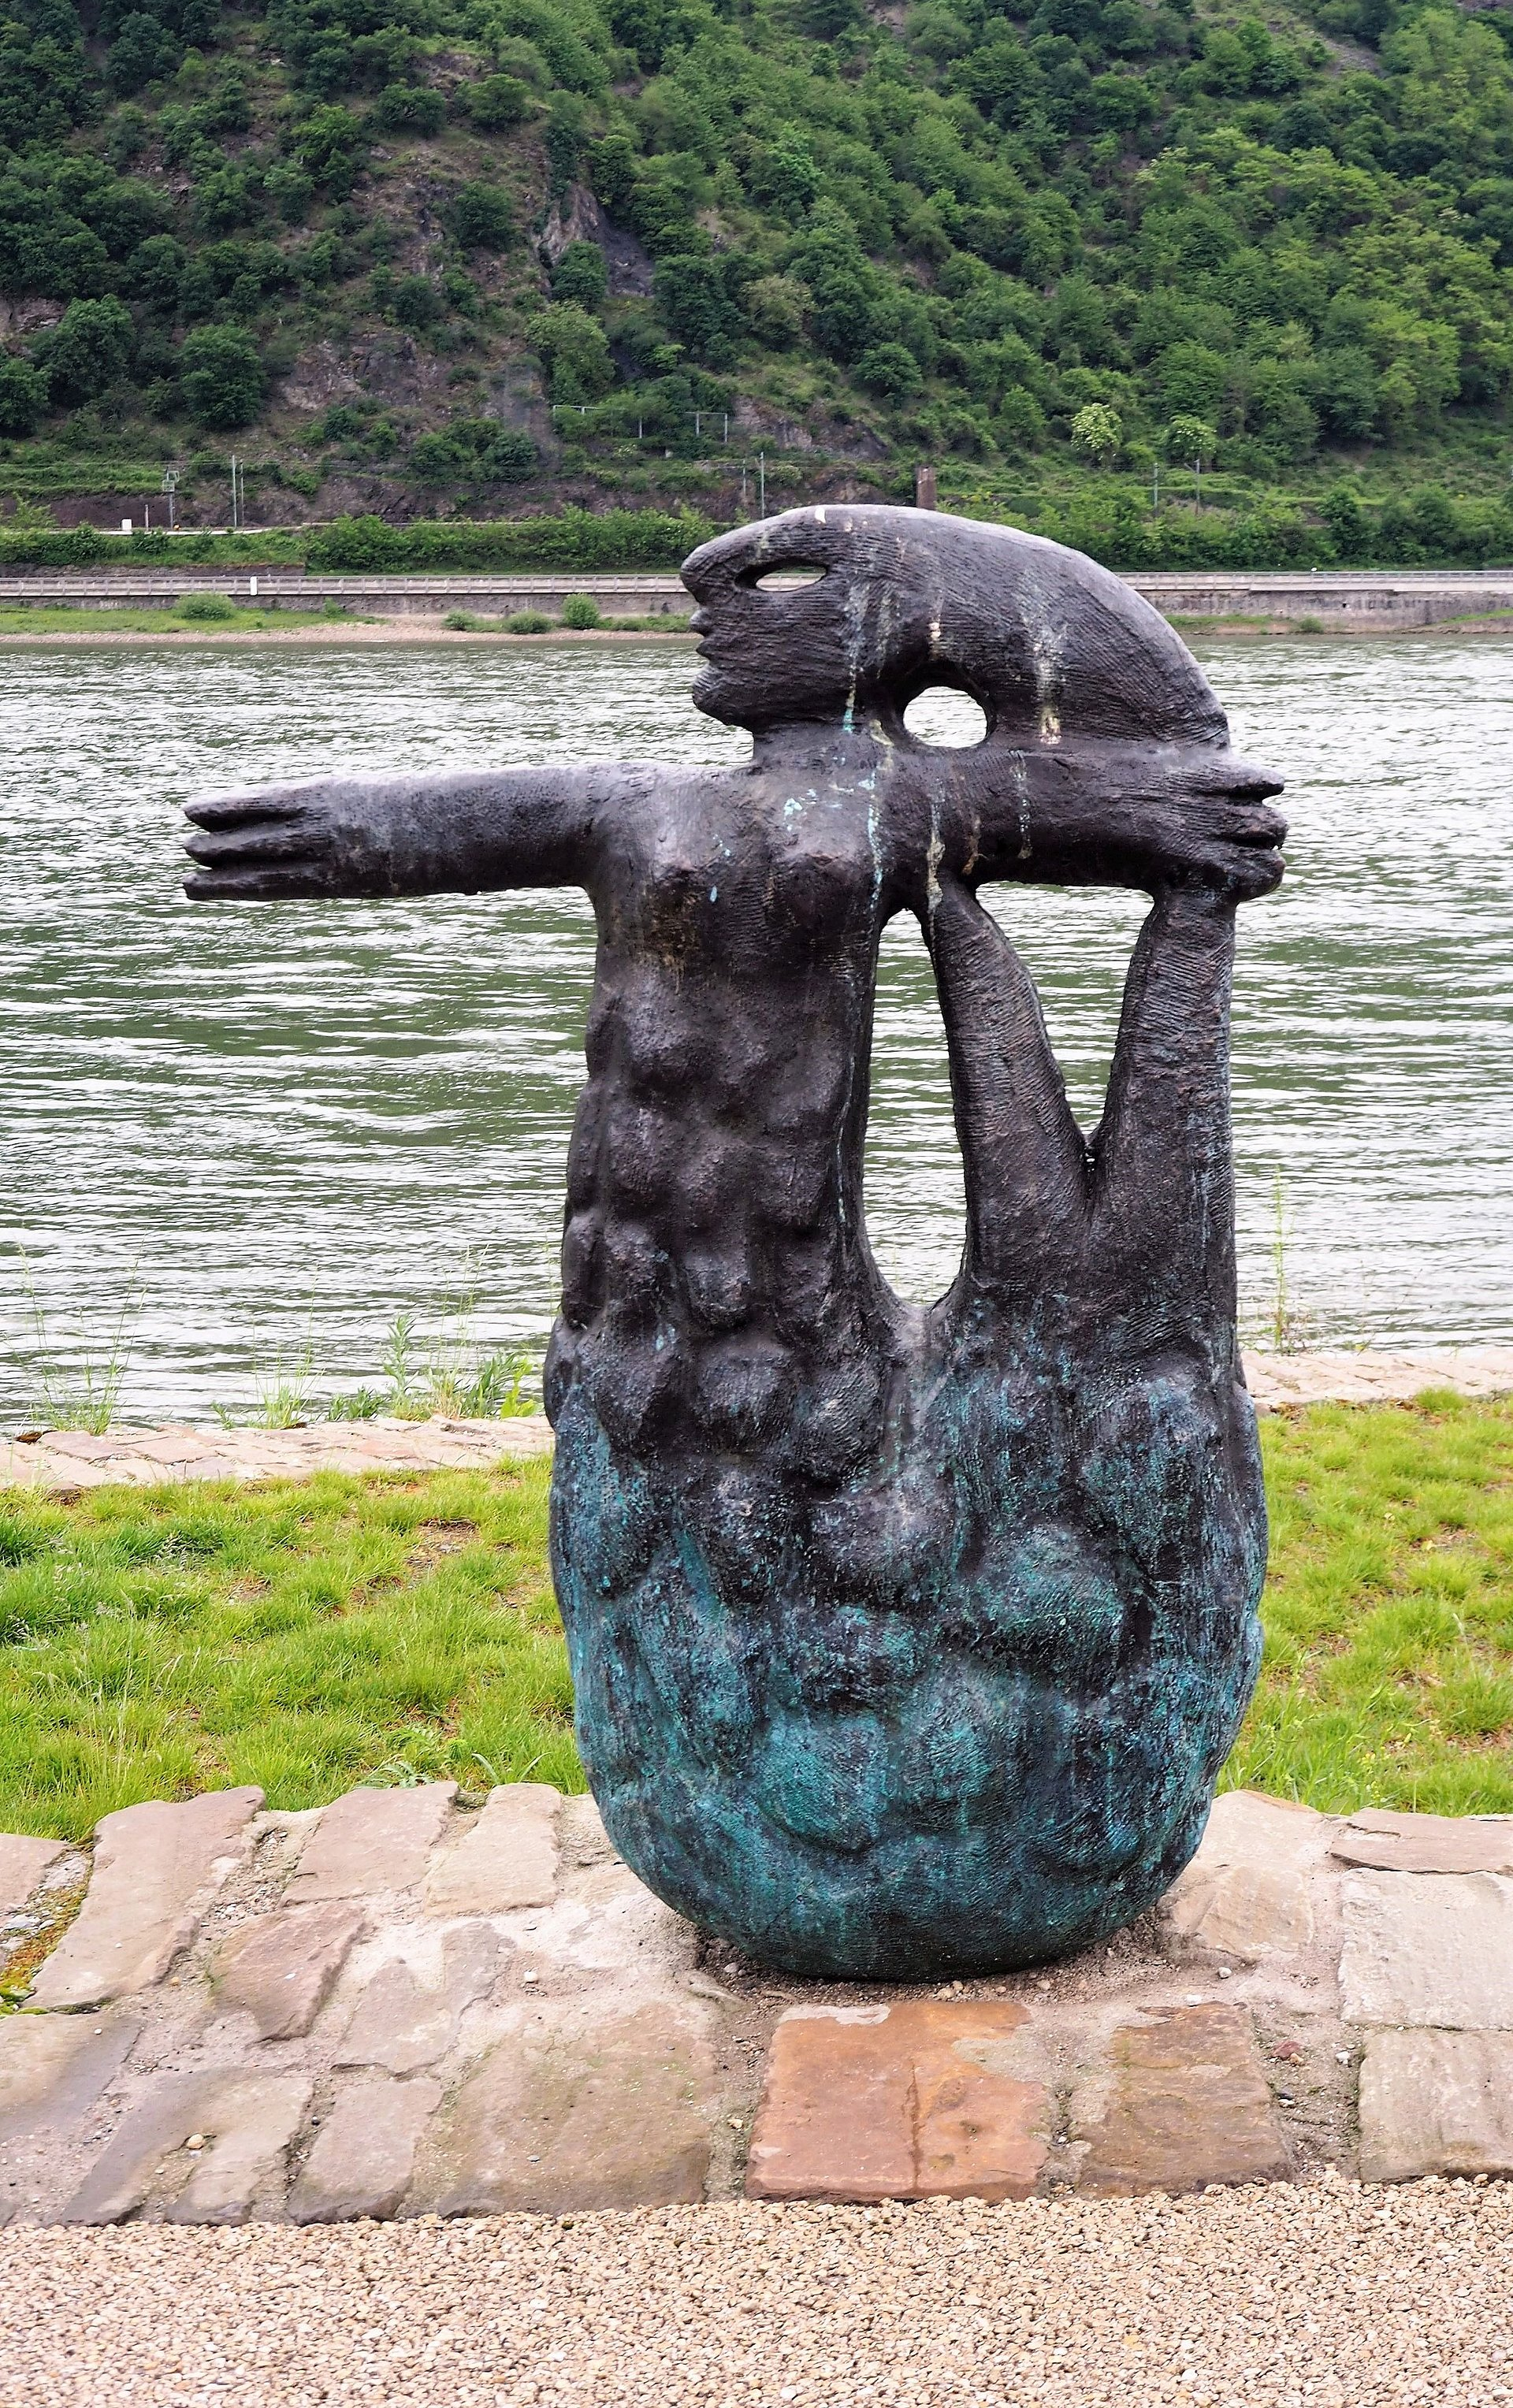 Metten sculpture of the Lorelei at Bacharach, Romantic Rhine